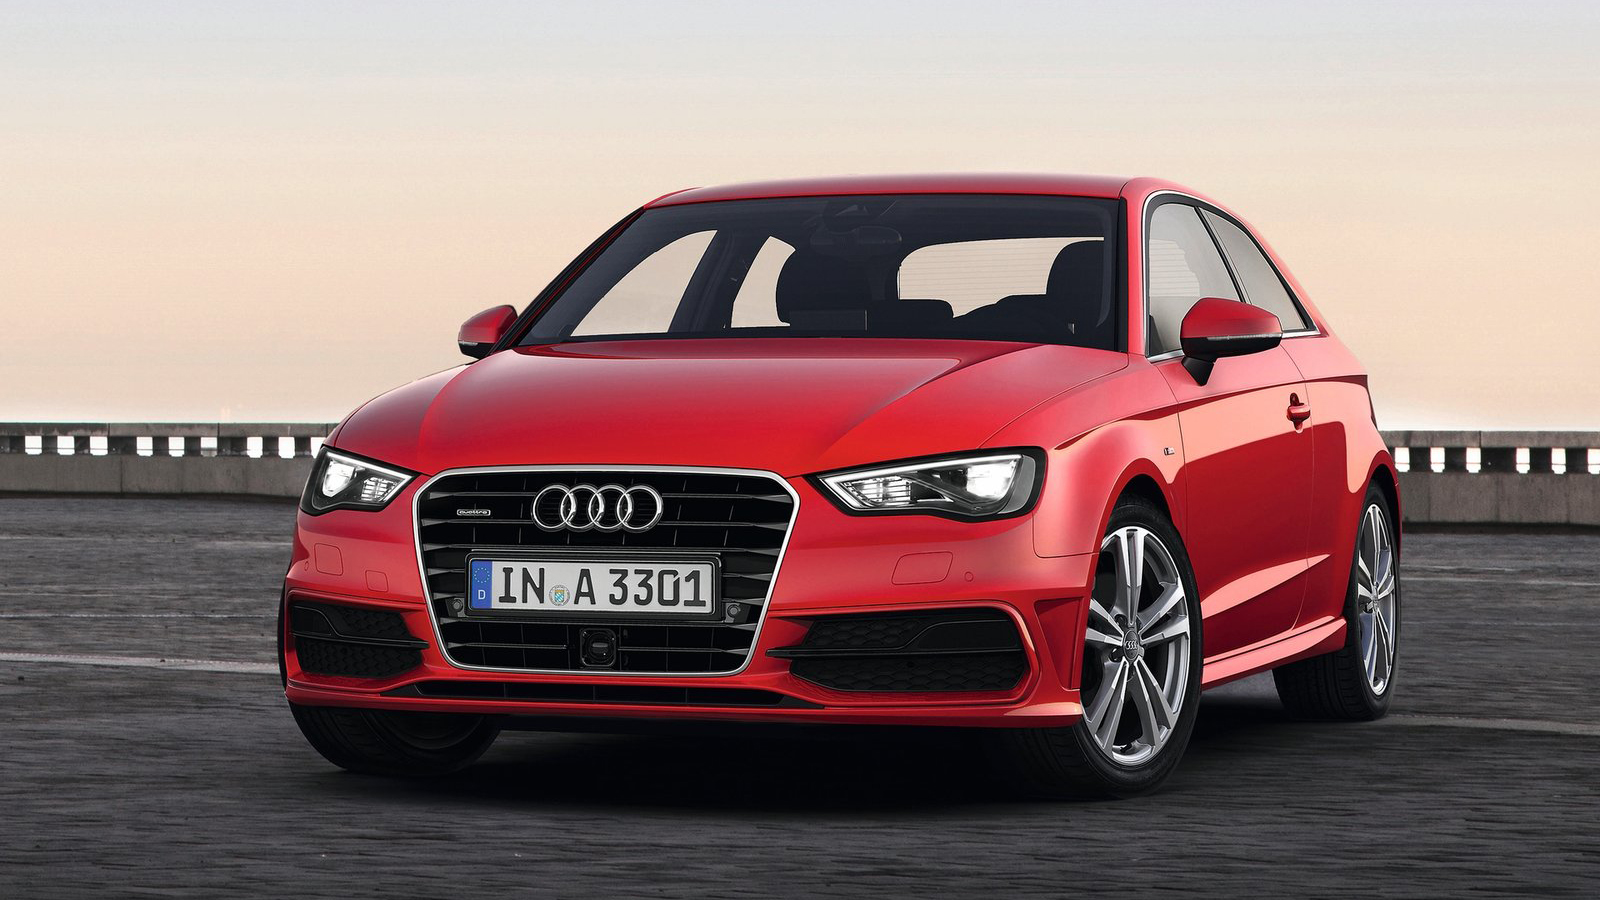 audi a3 hd wallpapers the world of audi. Black Bedroom Furniture Sets. Home Design Ideas